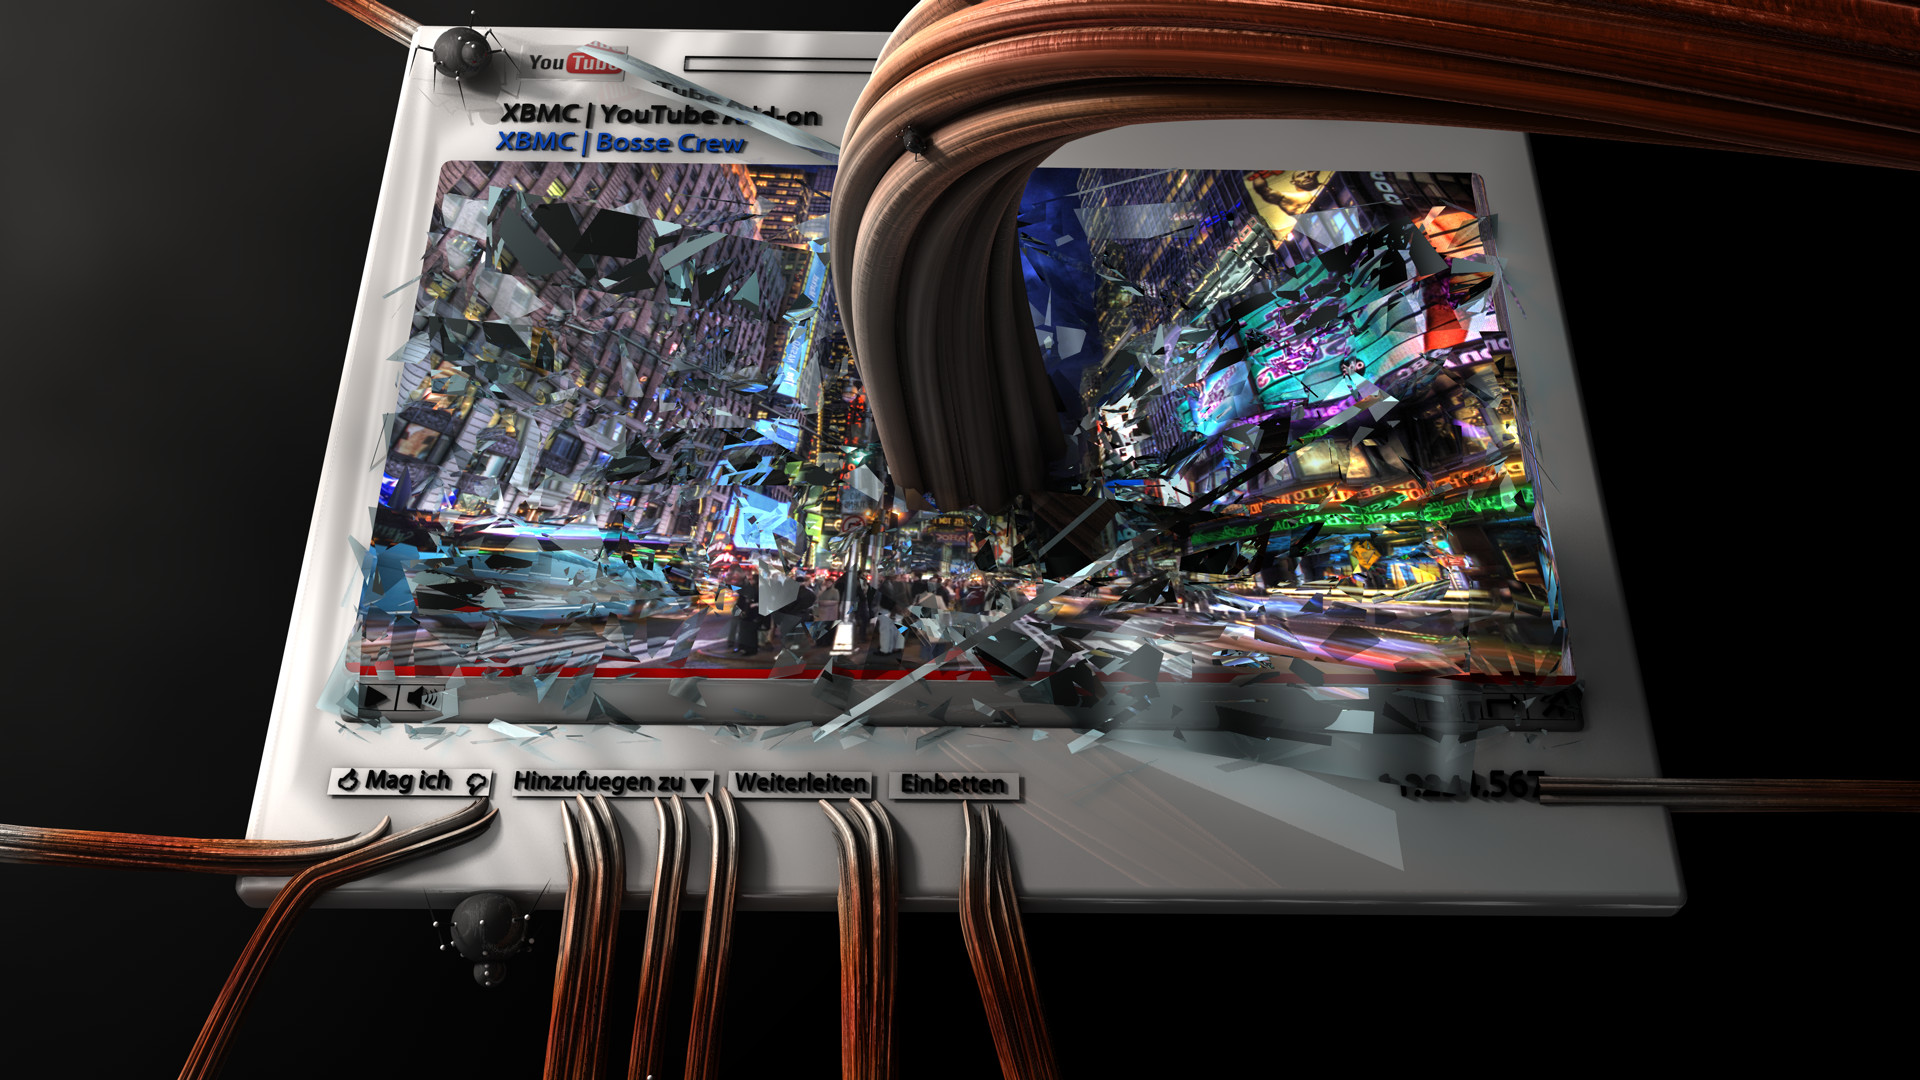 XBMC wallpaper collection 1080p by RaySpoint on DeviantArt